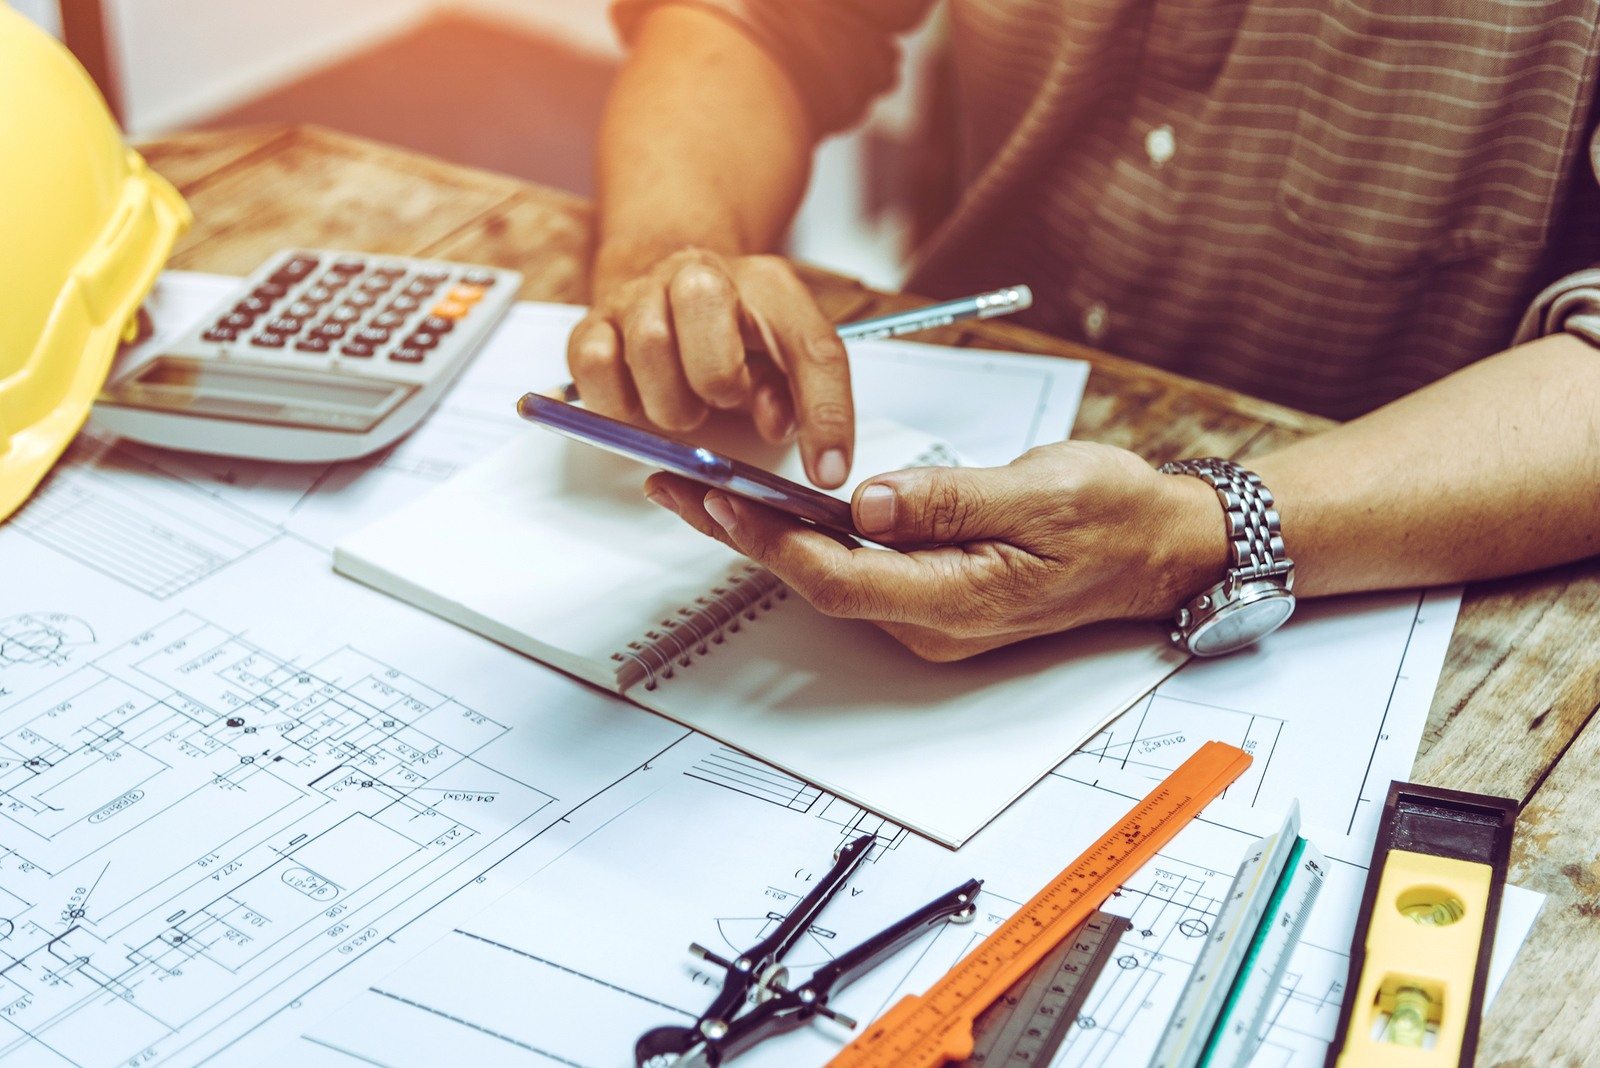 when applying for your california contractor license, the cslb also allows you to use tax documents and check stubs as a way to prove your experience